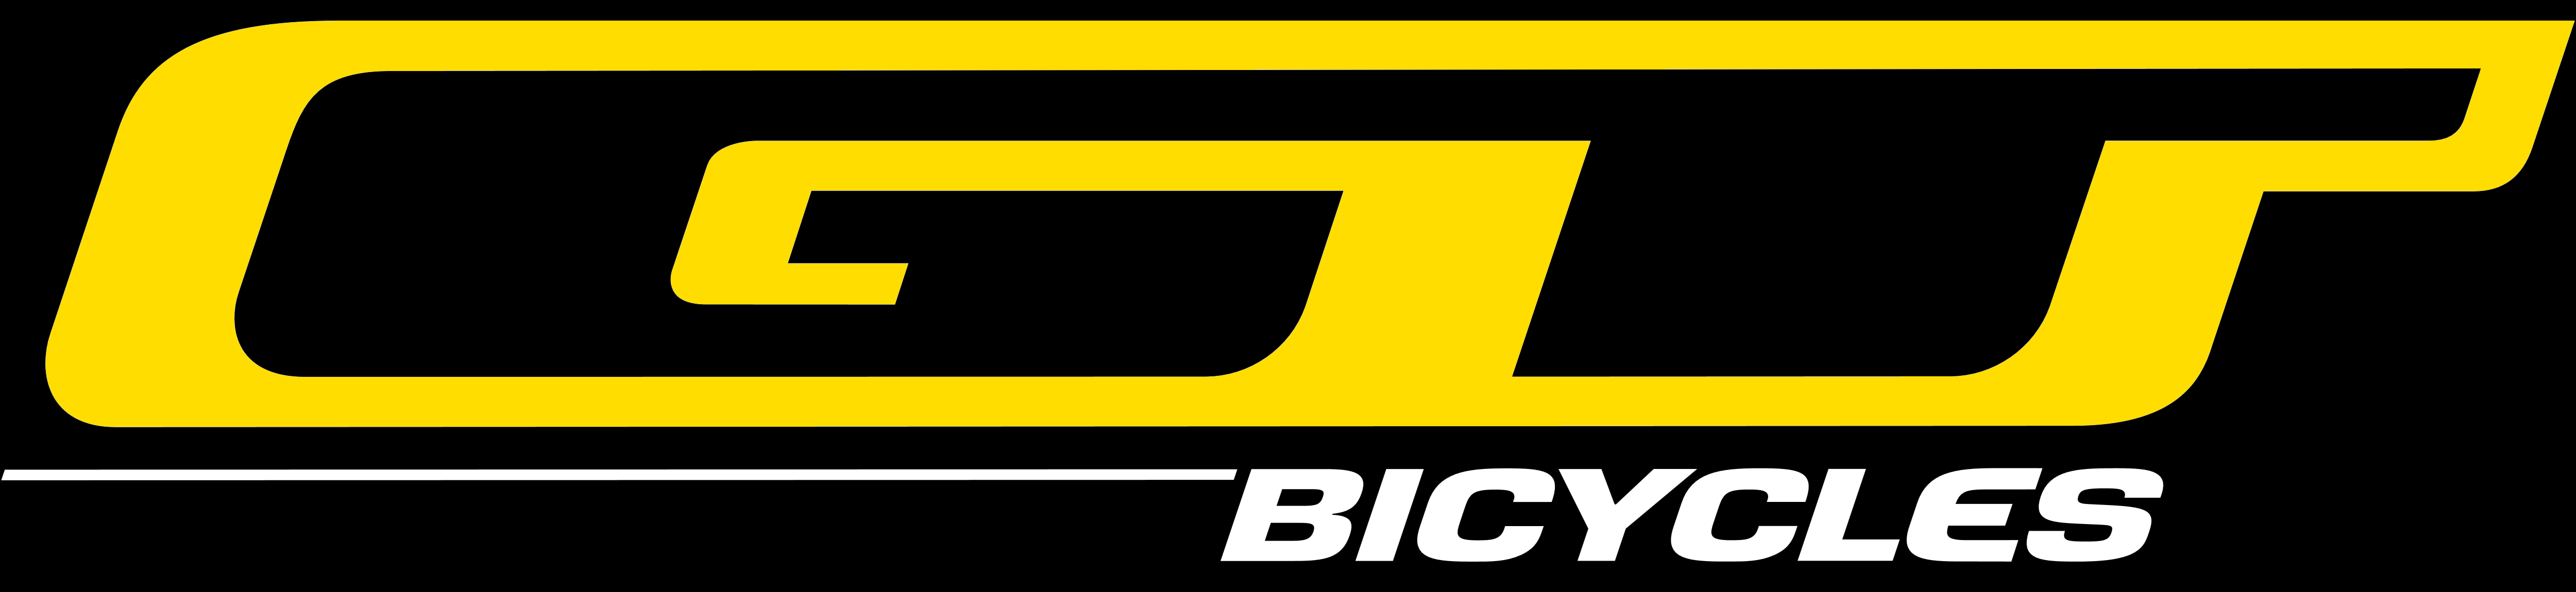 Gt Bicycles Logos Download